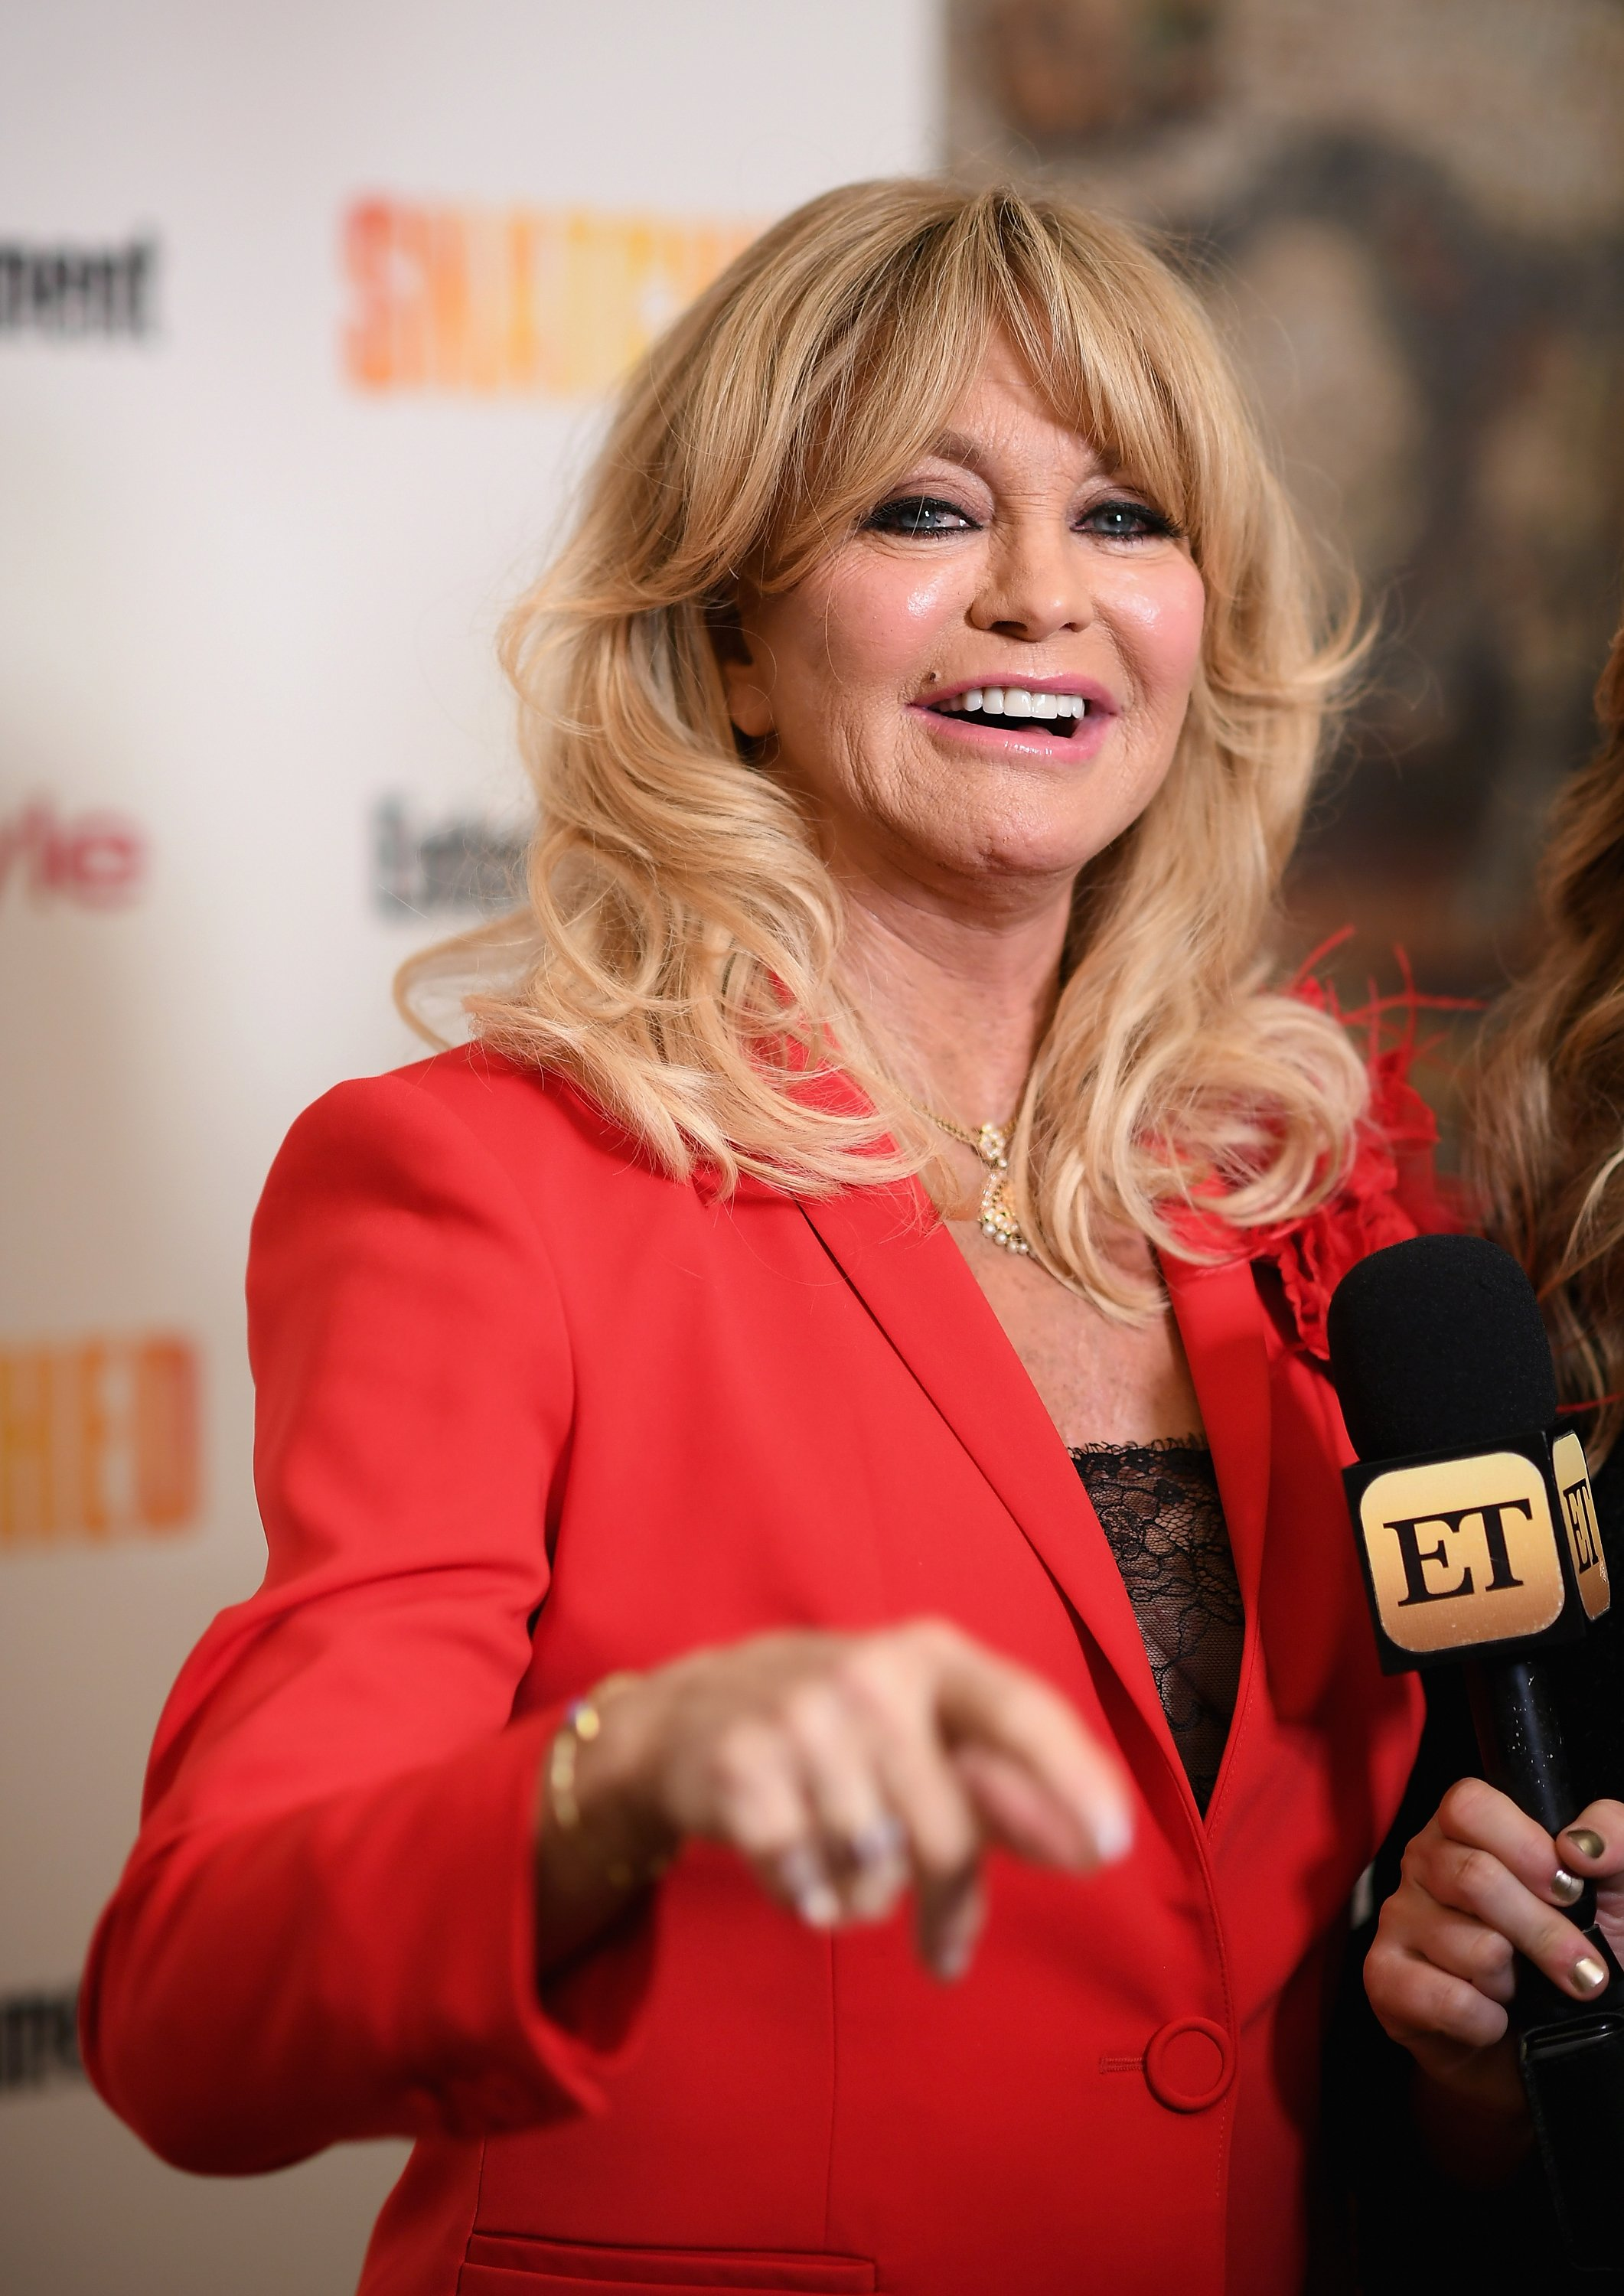 """Goldie Hawn attends the """"Snatched"""" New York Premiere on May 2, 2017, in New York City. 